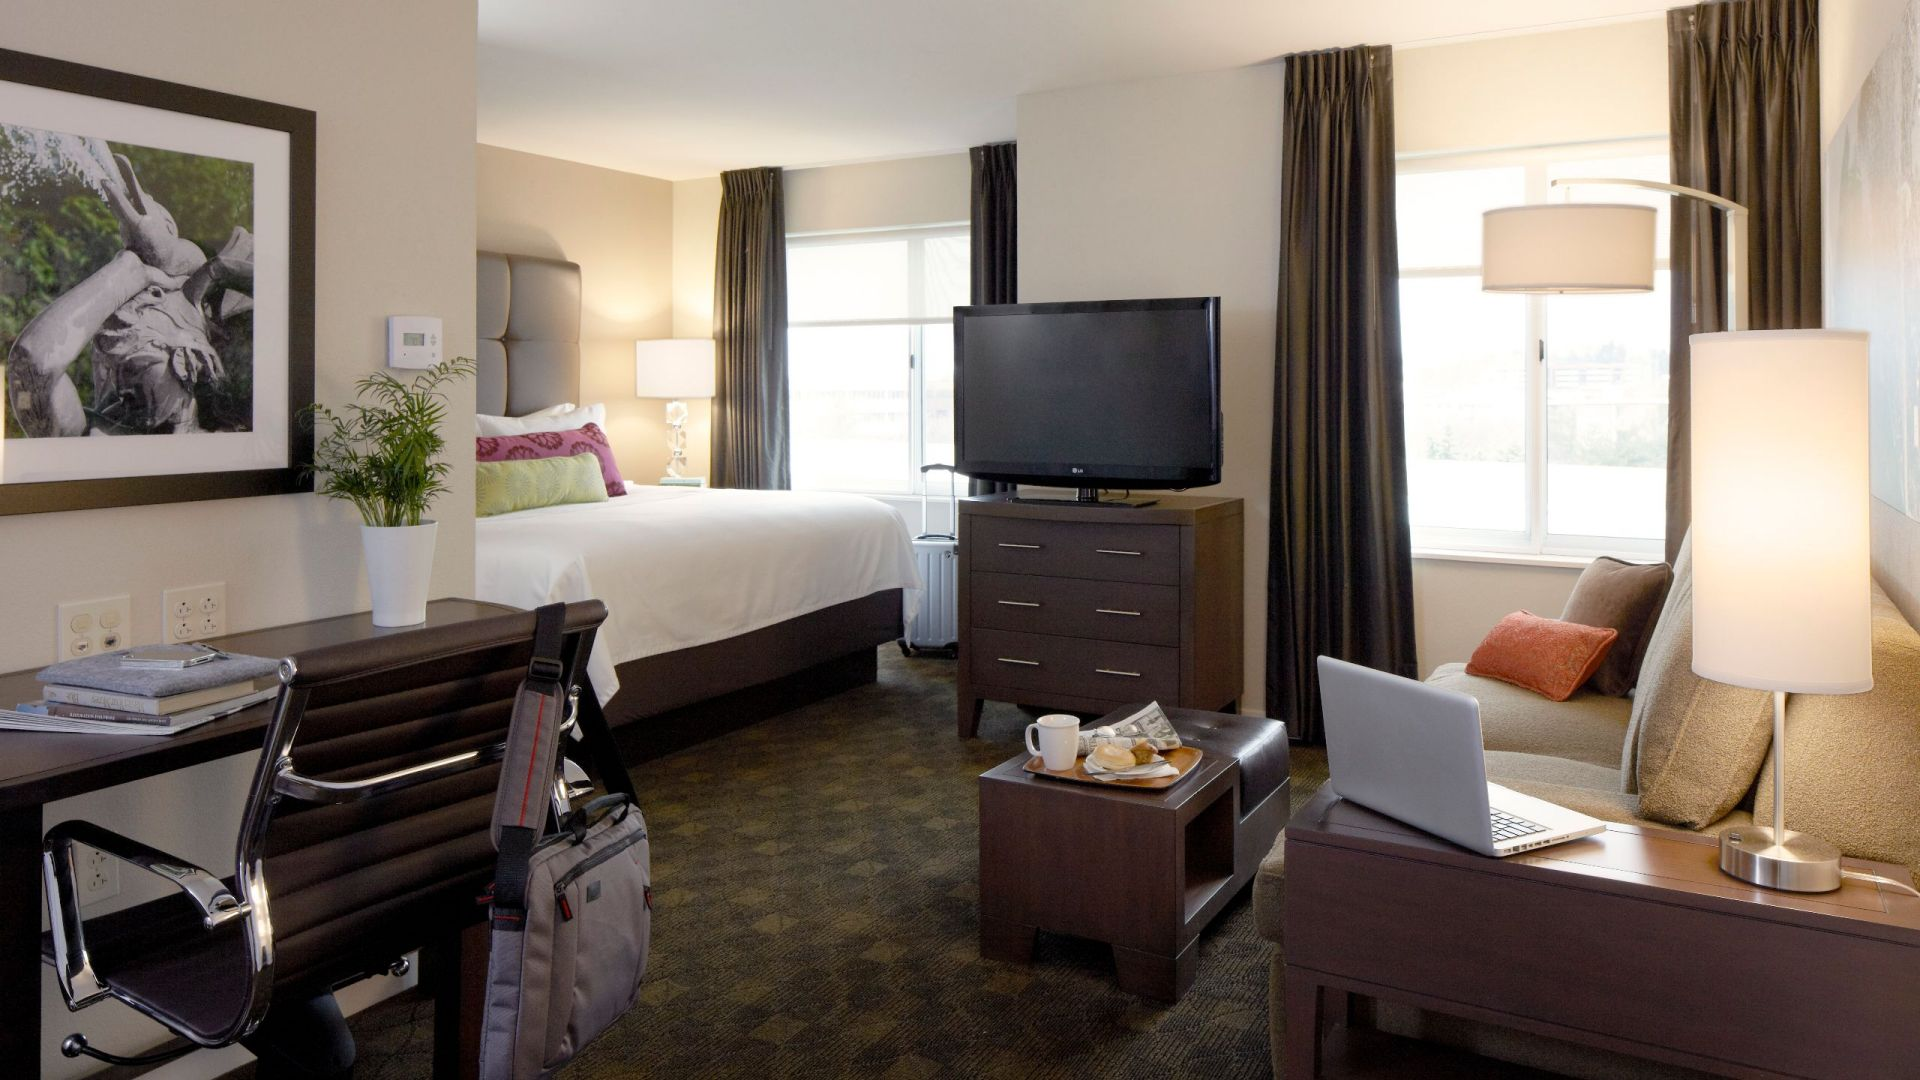 King of Prussia Hotel Rooms – Hyatt House Hotel Philadelphia/King of Prussia